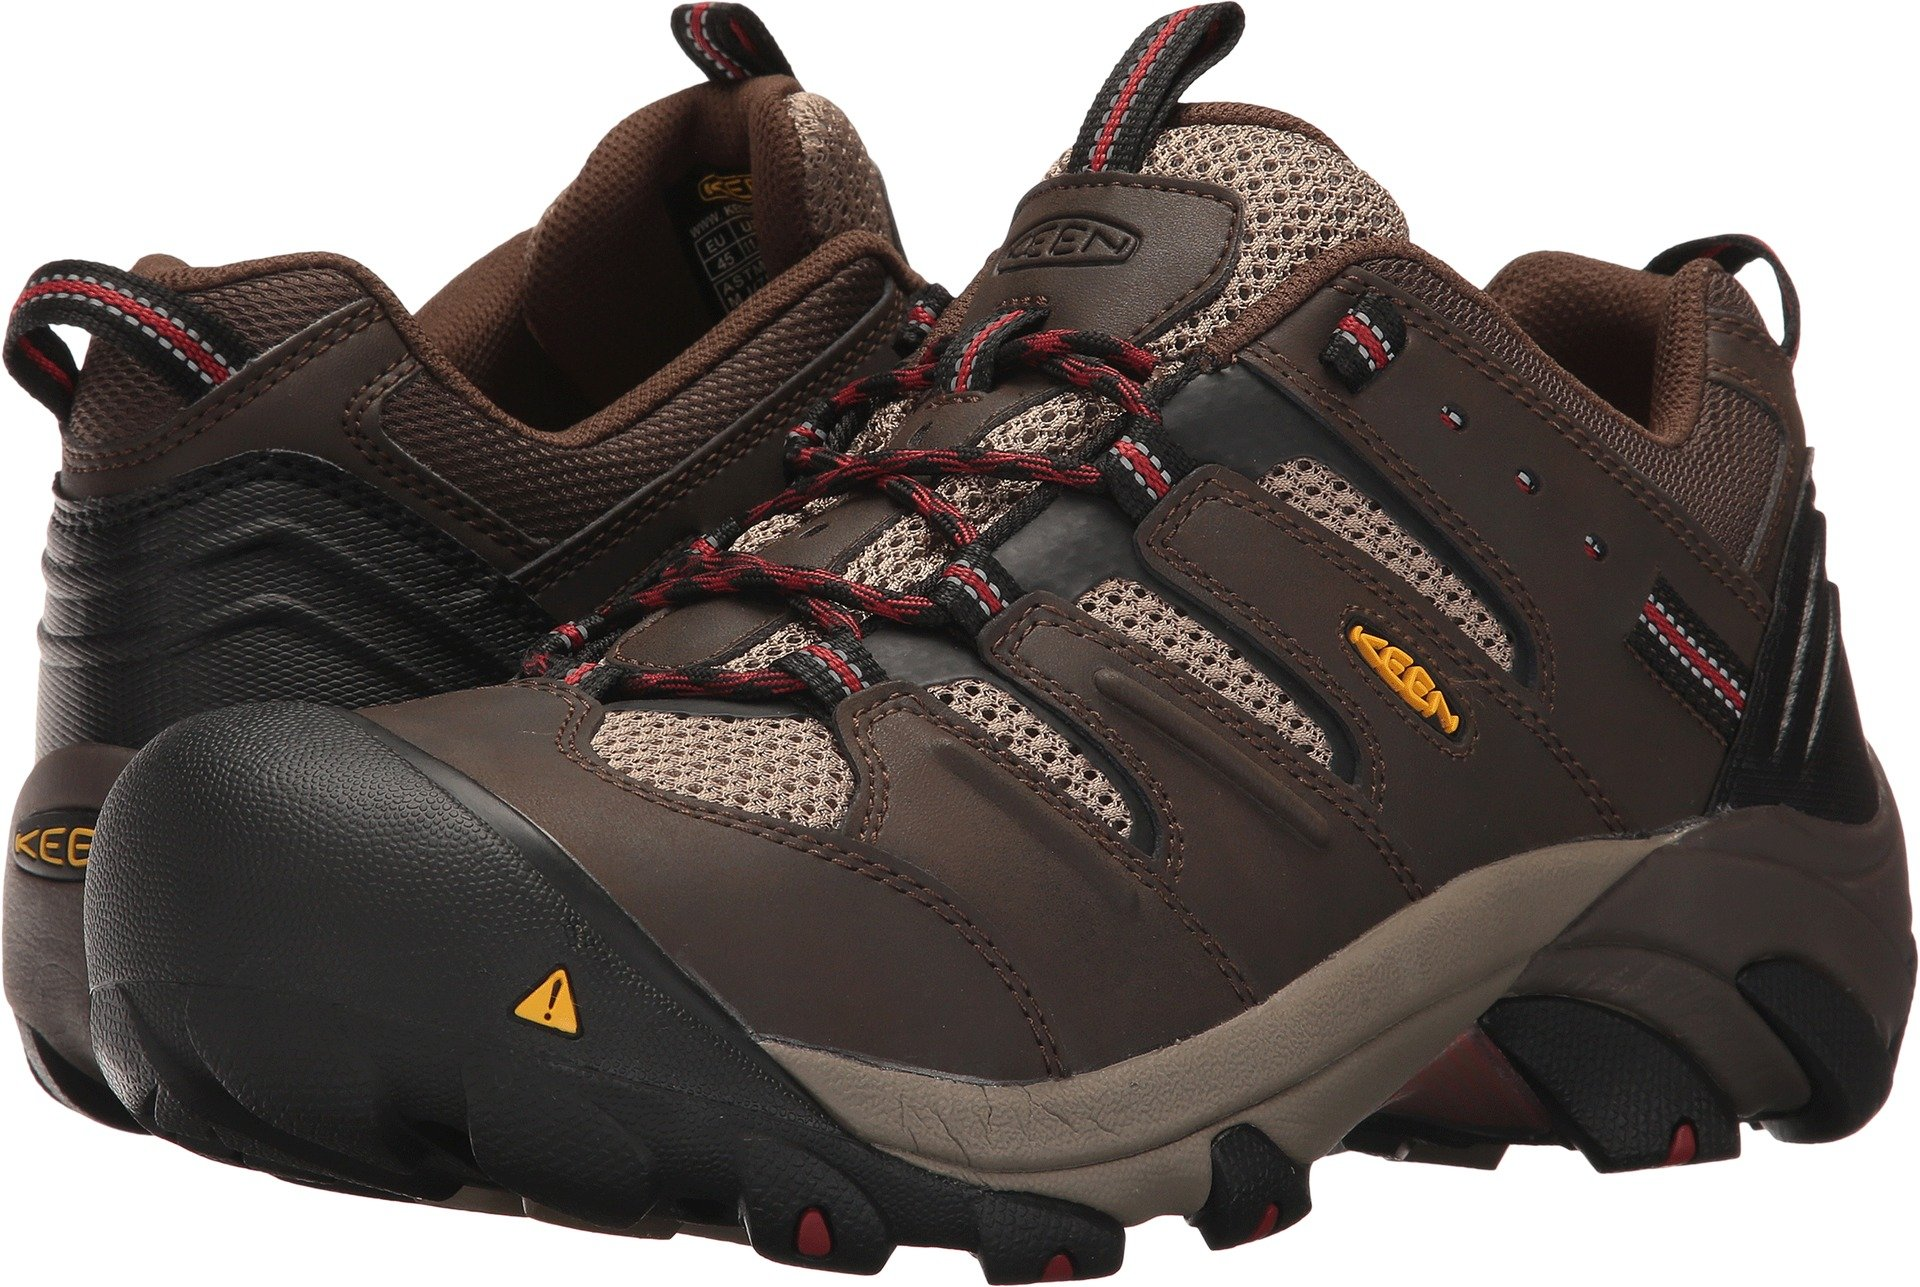 KEEN Utility Men's Lansing Low Industrial and Construction Shoe, Cascade Brown/Bossa Nova, 12 D US